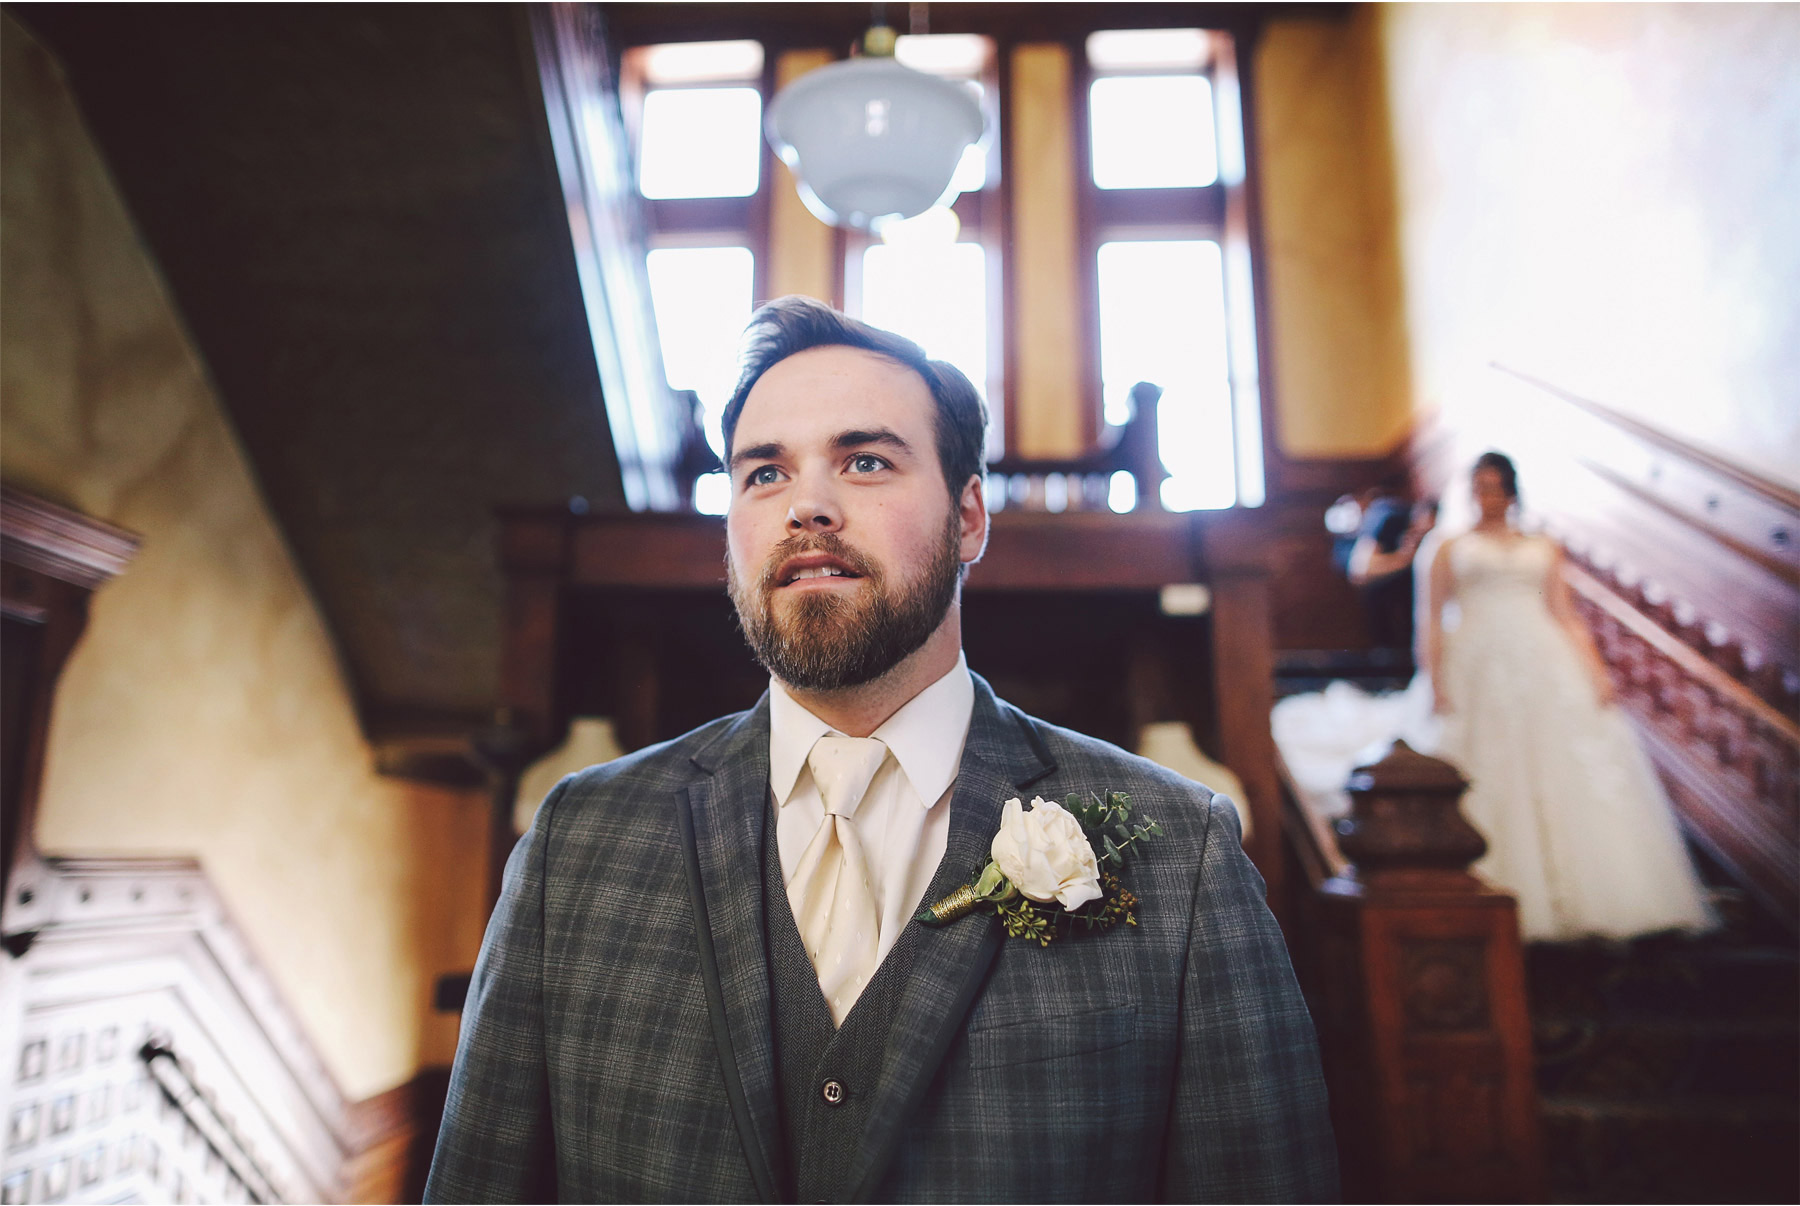 03-Minneapolis-Wedding-Photography-by-Vick-Photography-Historic-Concord-Exchange-First-Look-Rachael-and-Benjamin.jpg